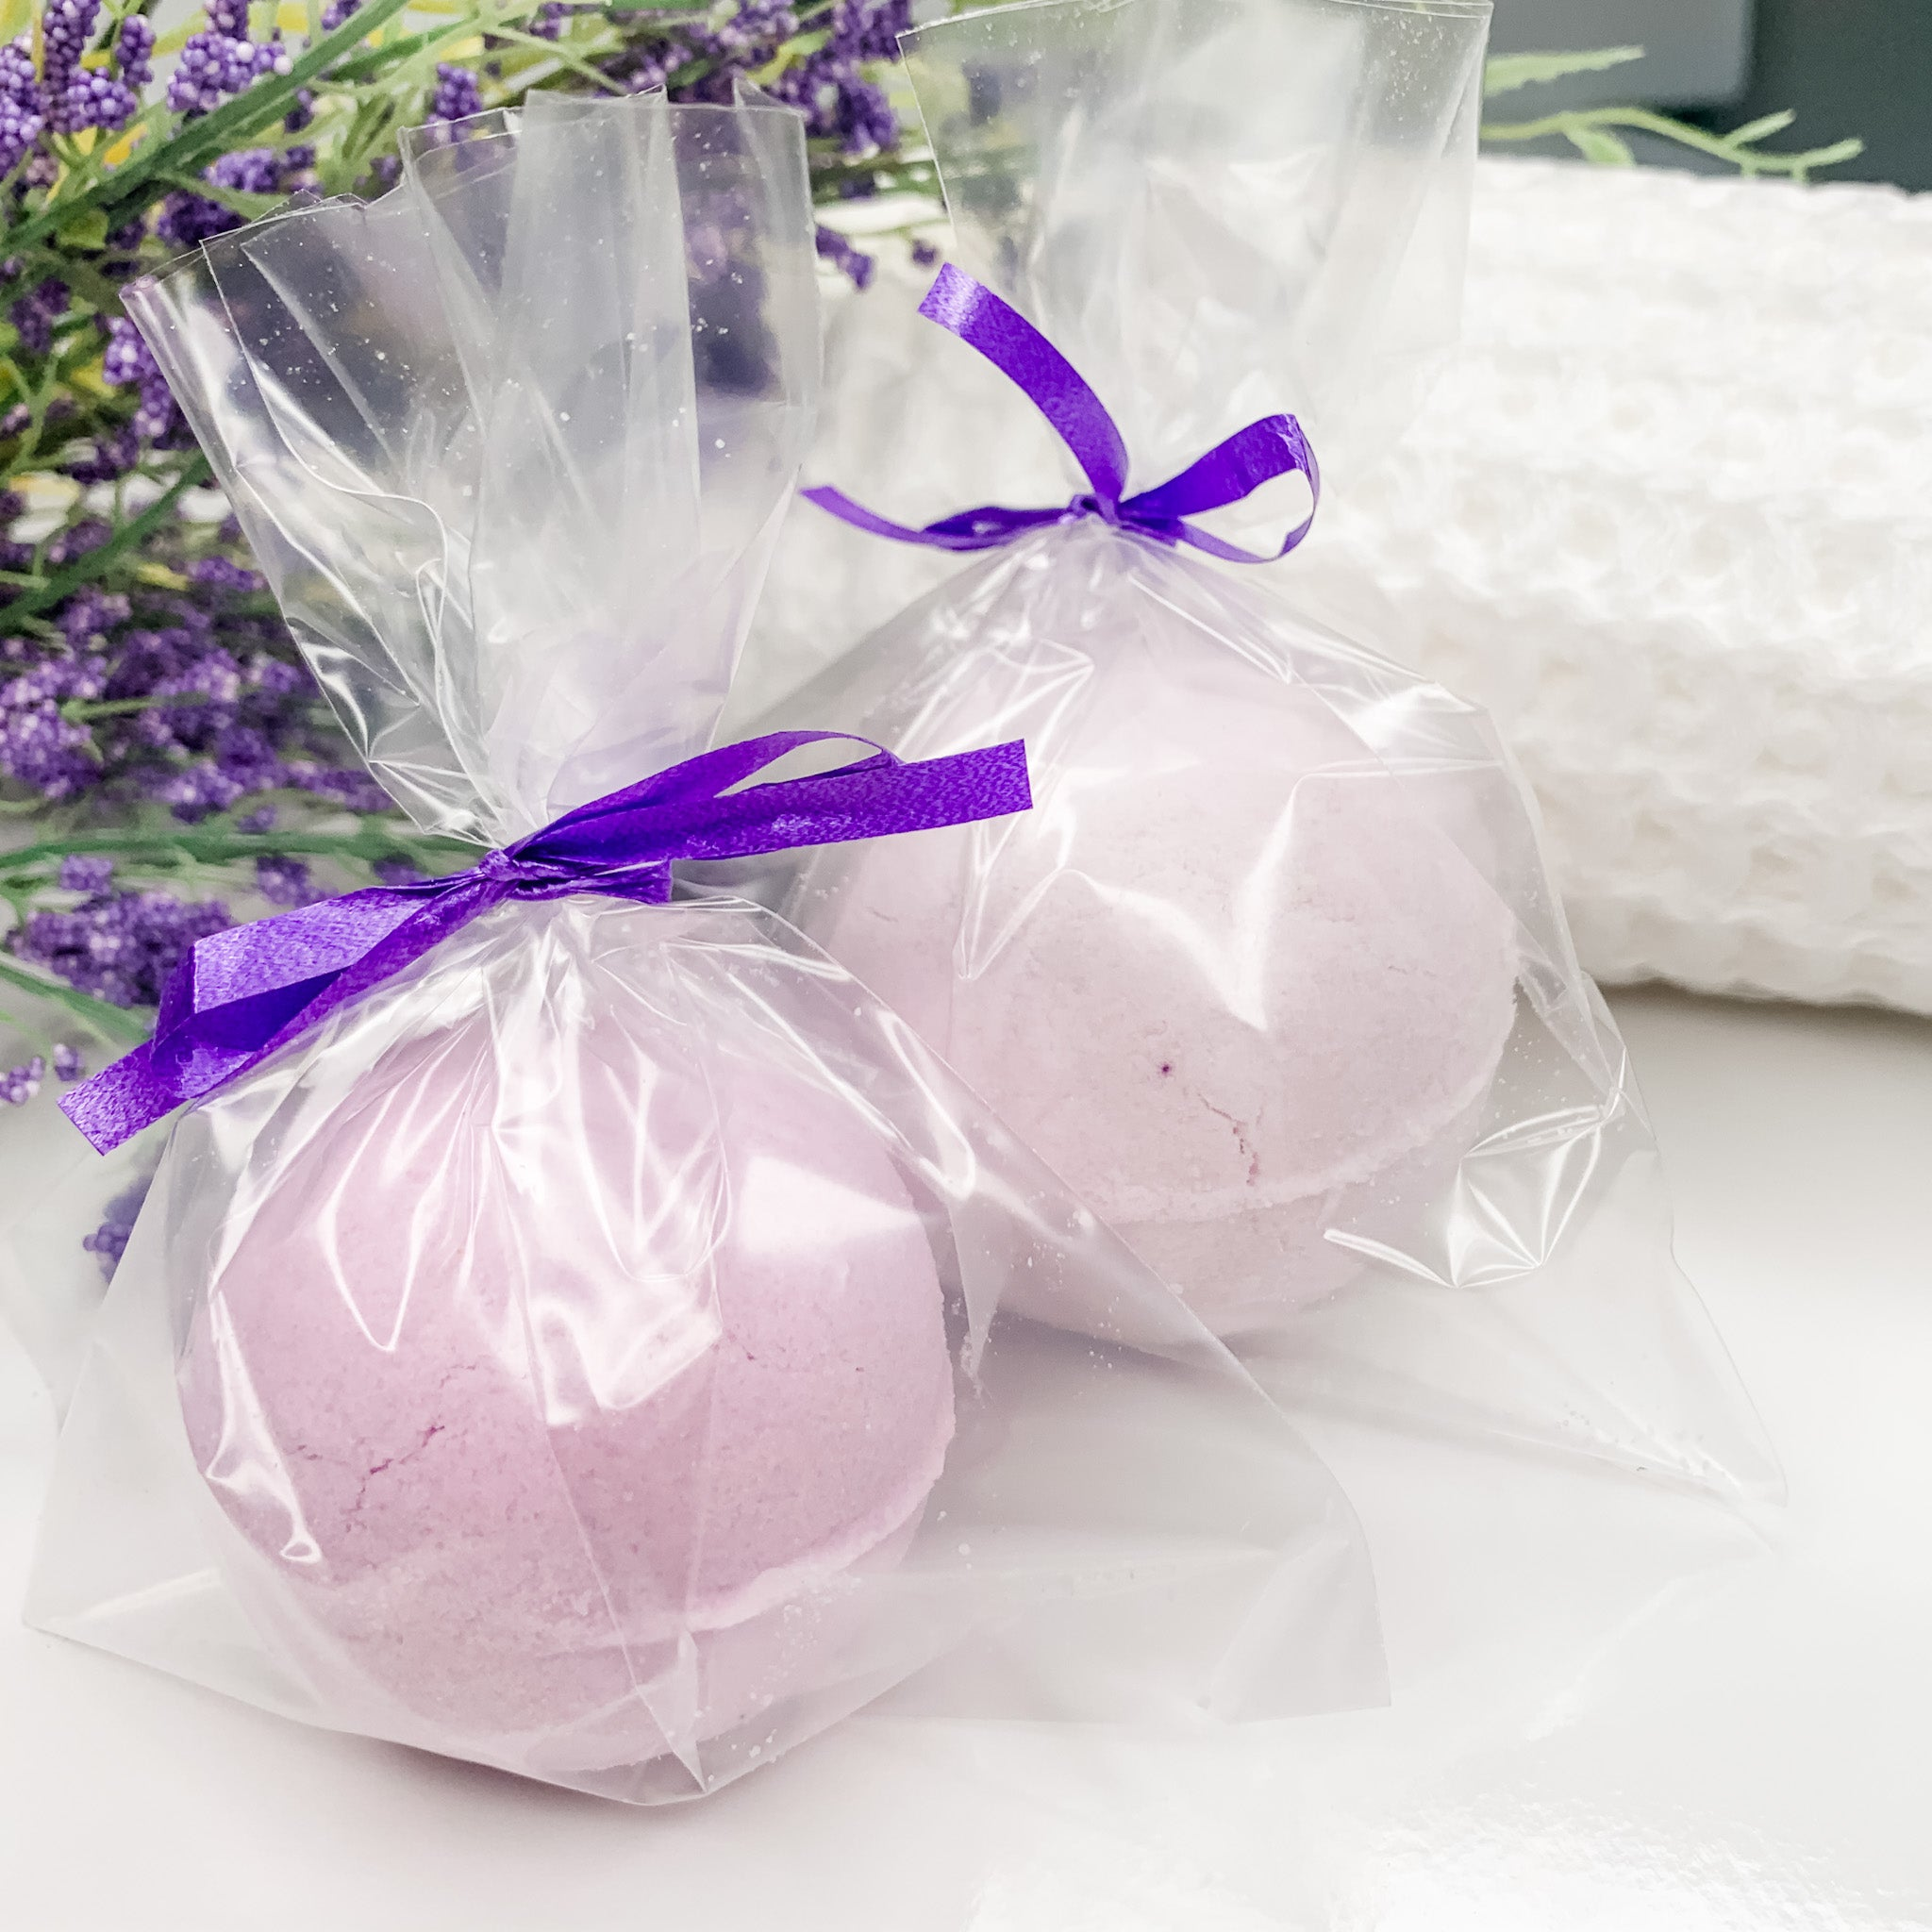 Hand Crafted Bath Bombs with Shea Butter and Lemon, Lavender & Patchouli EO